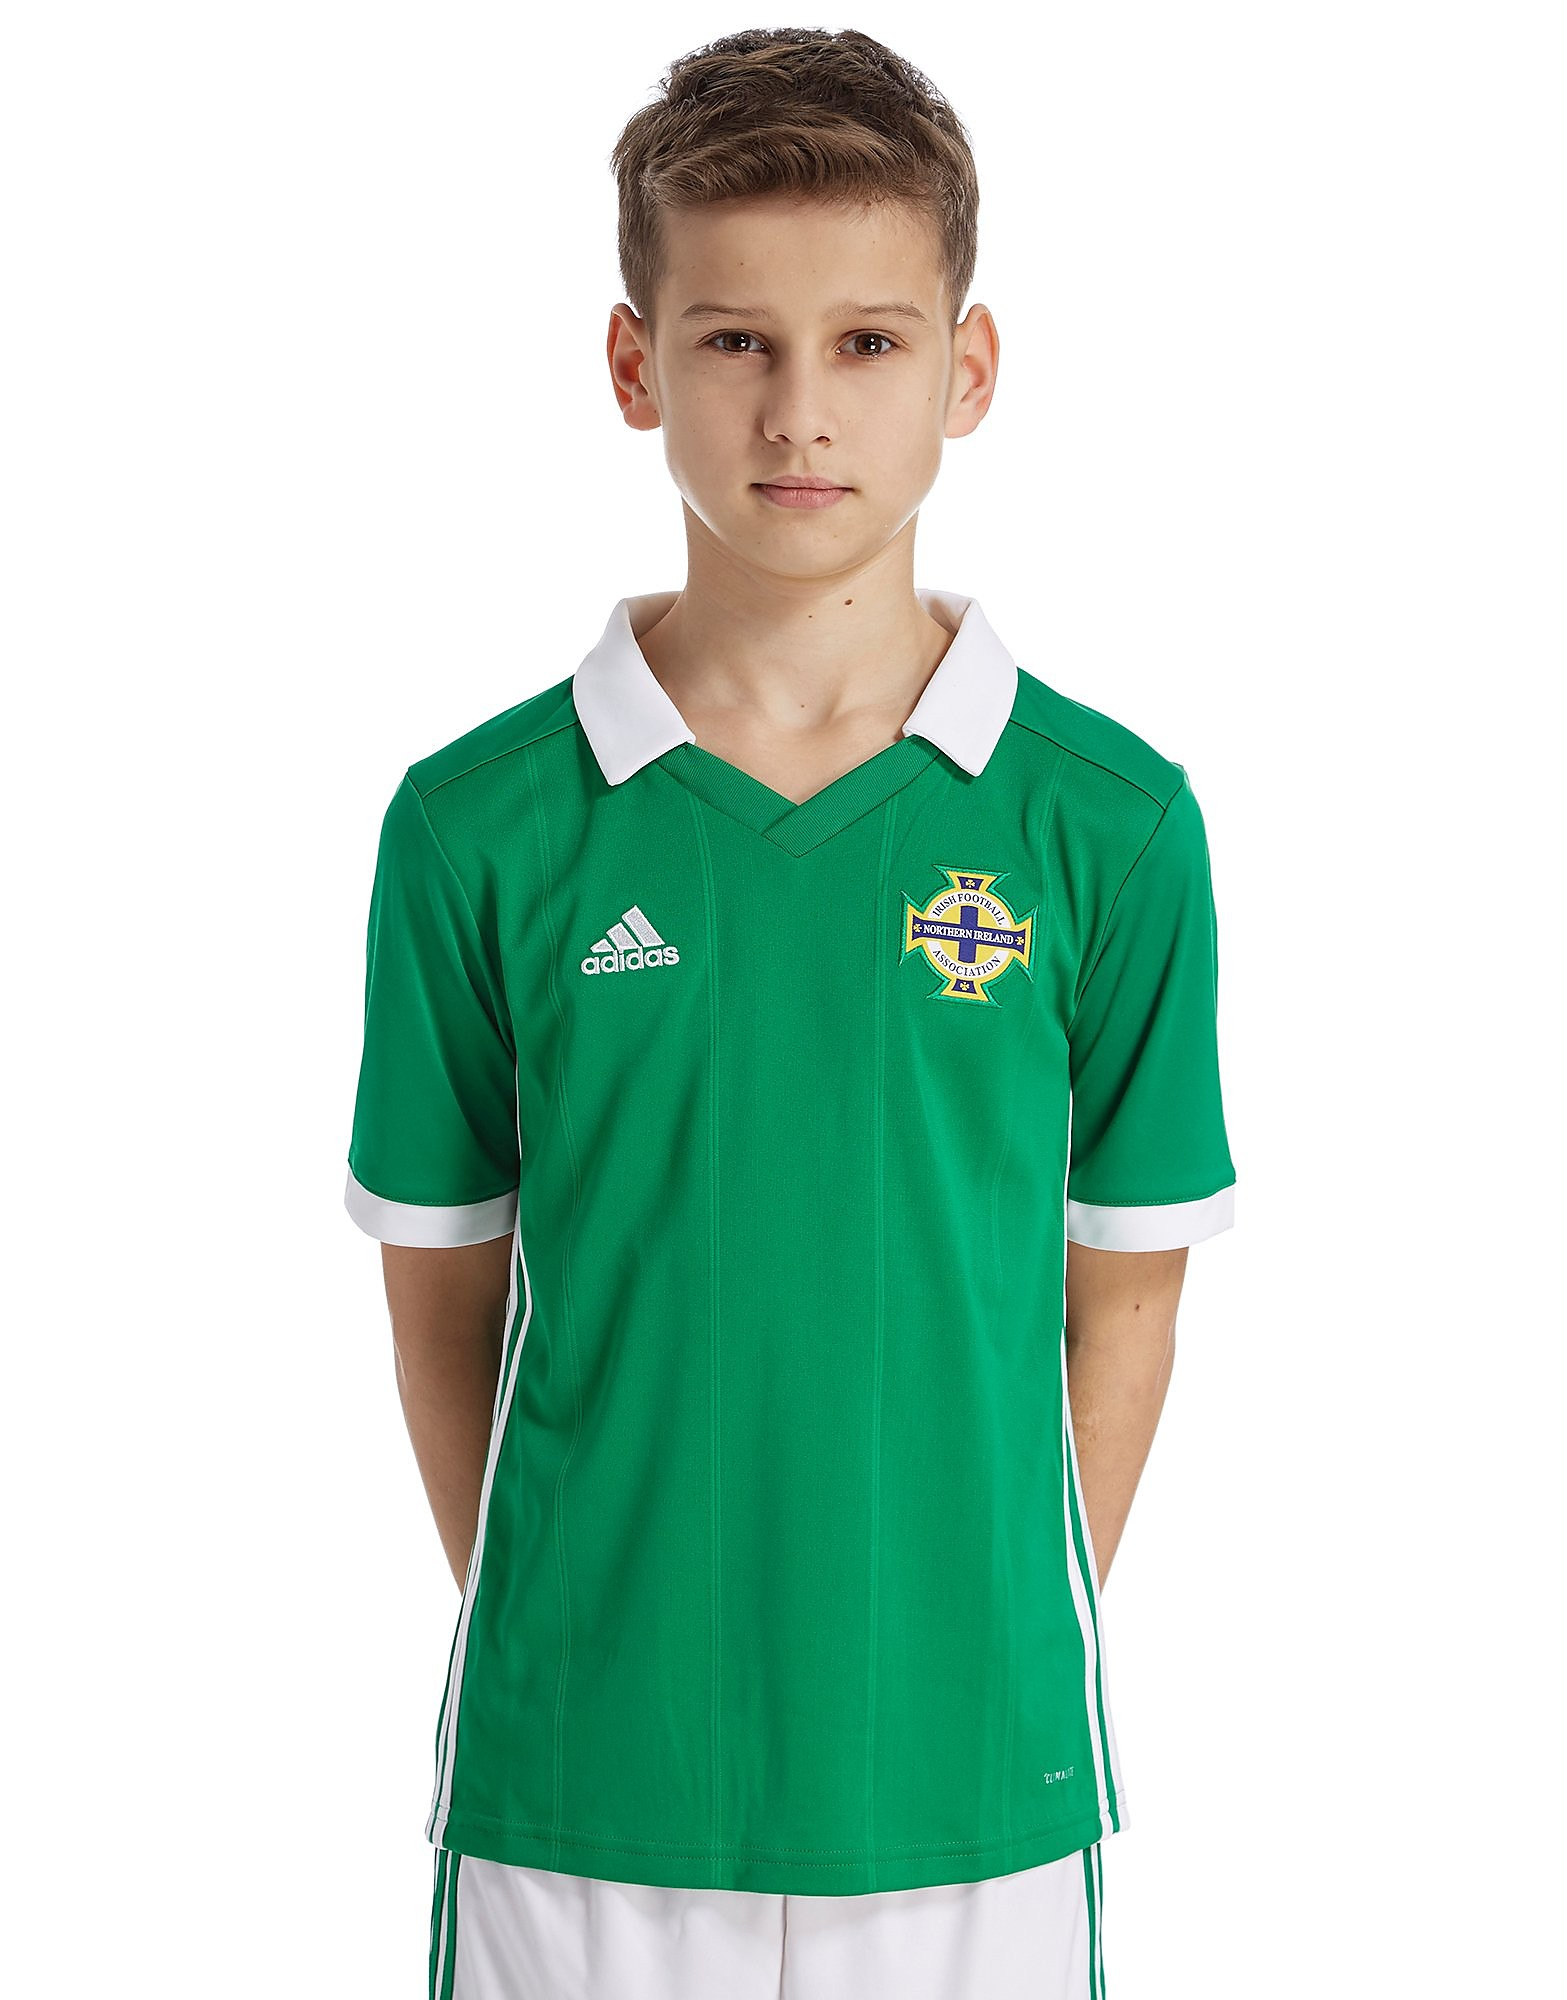 adidas Northern Ireland 2017/18 Home Shirt Junior